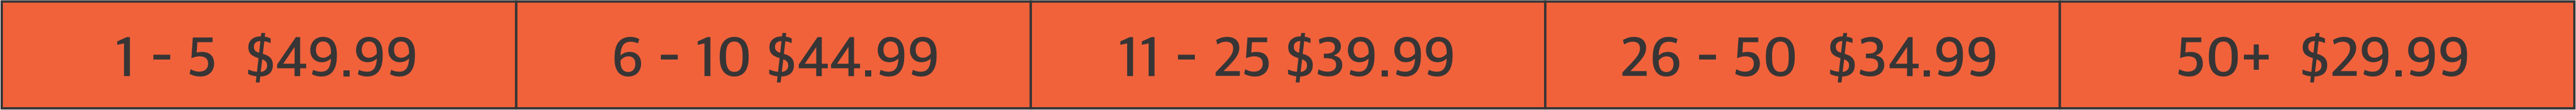 pricing3.png